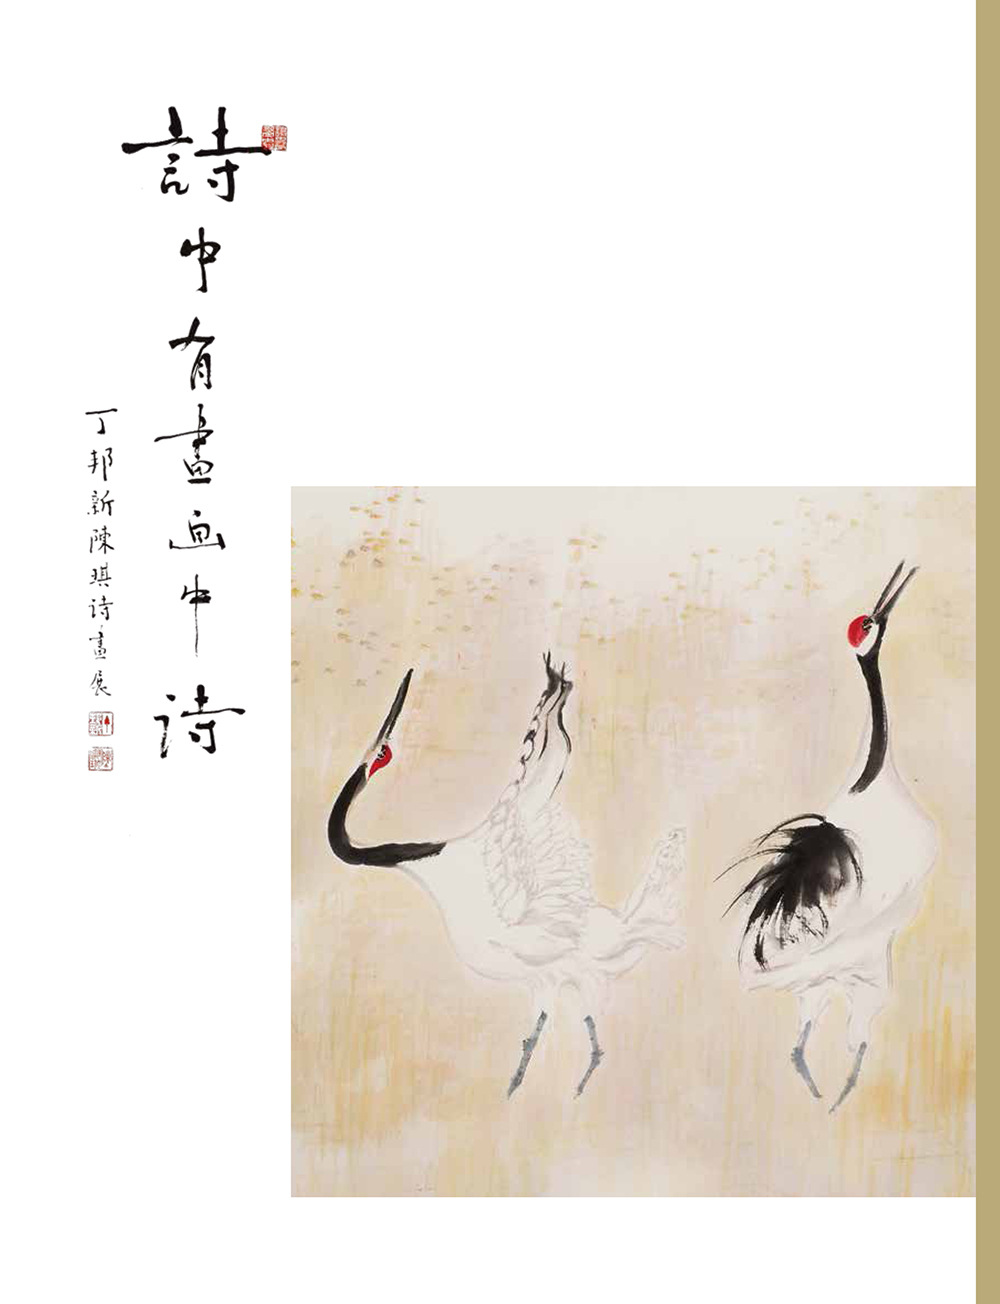 Pictures in Poems; Poems in Pictures: Duel Exhibition of Pang-Hsin Ting, Chen Chi